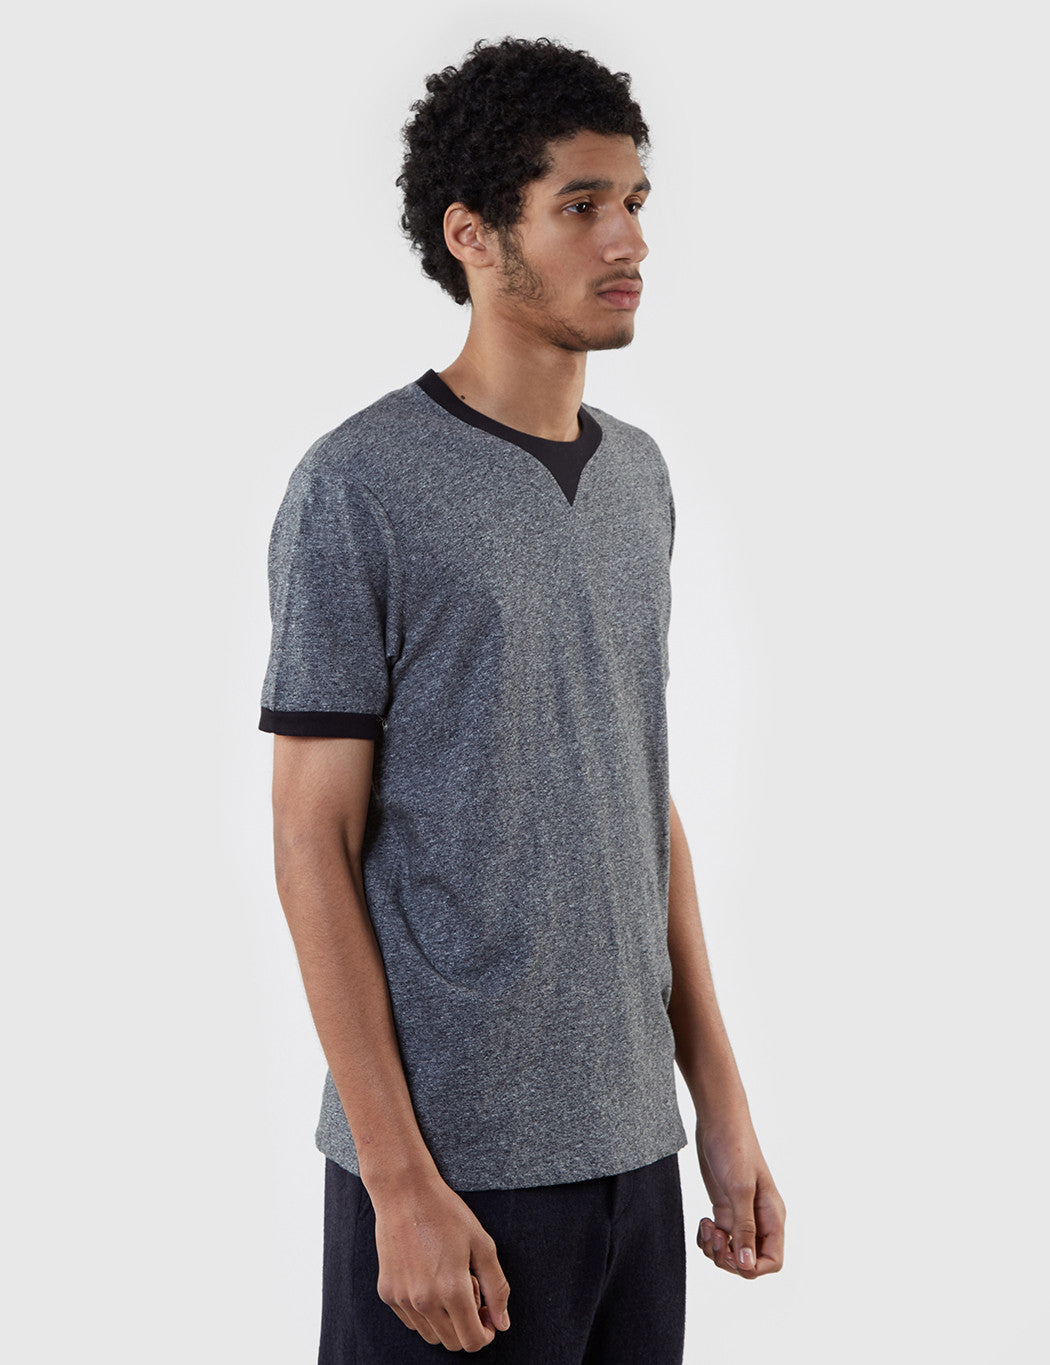 Edwin International T-shirt (Marl) - Black